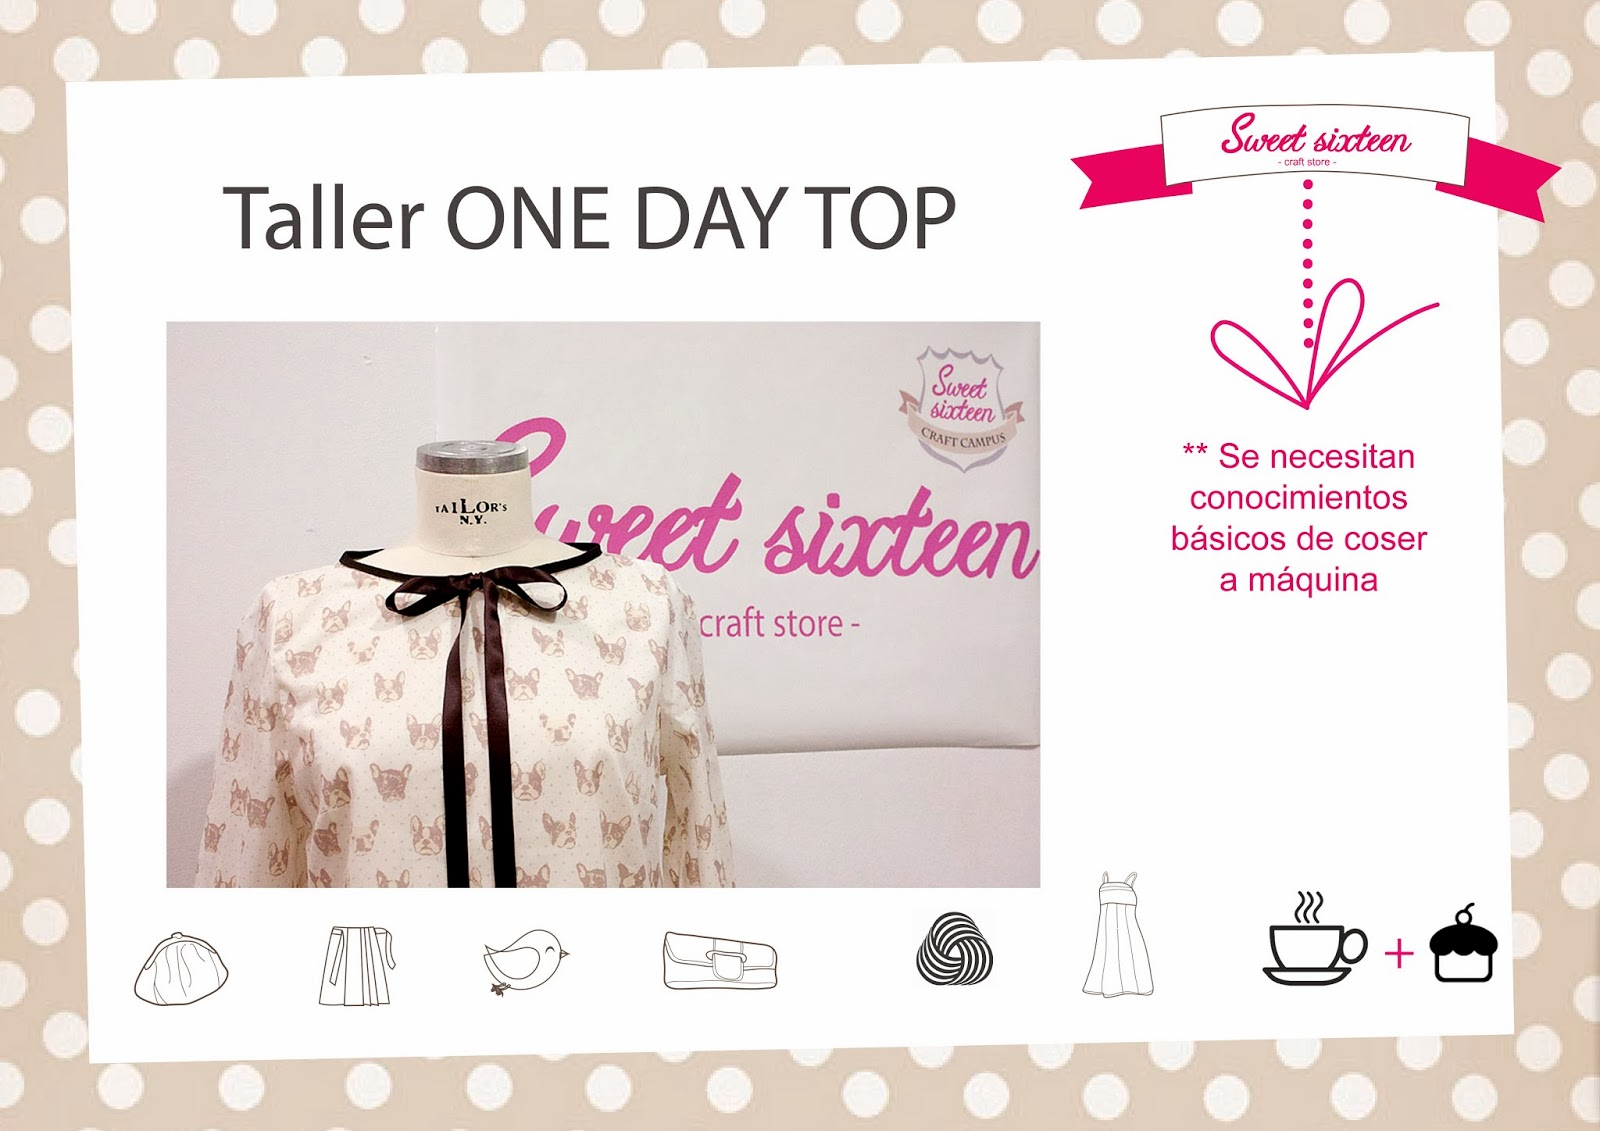 Taller monográfico ONE DAY TOP Sweet sixteen craft store